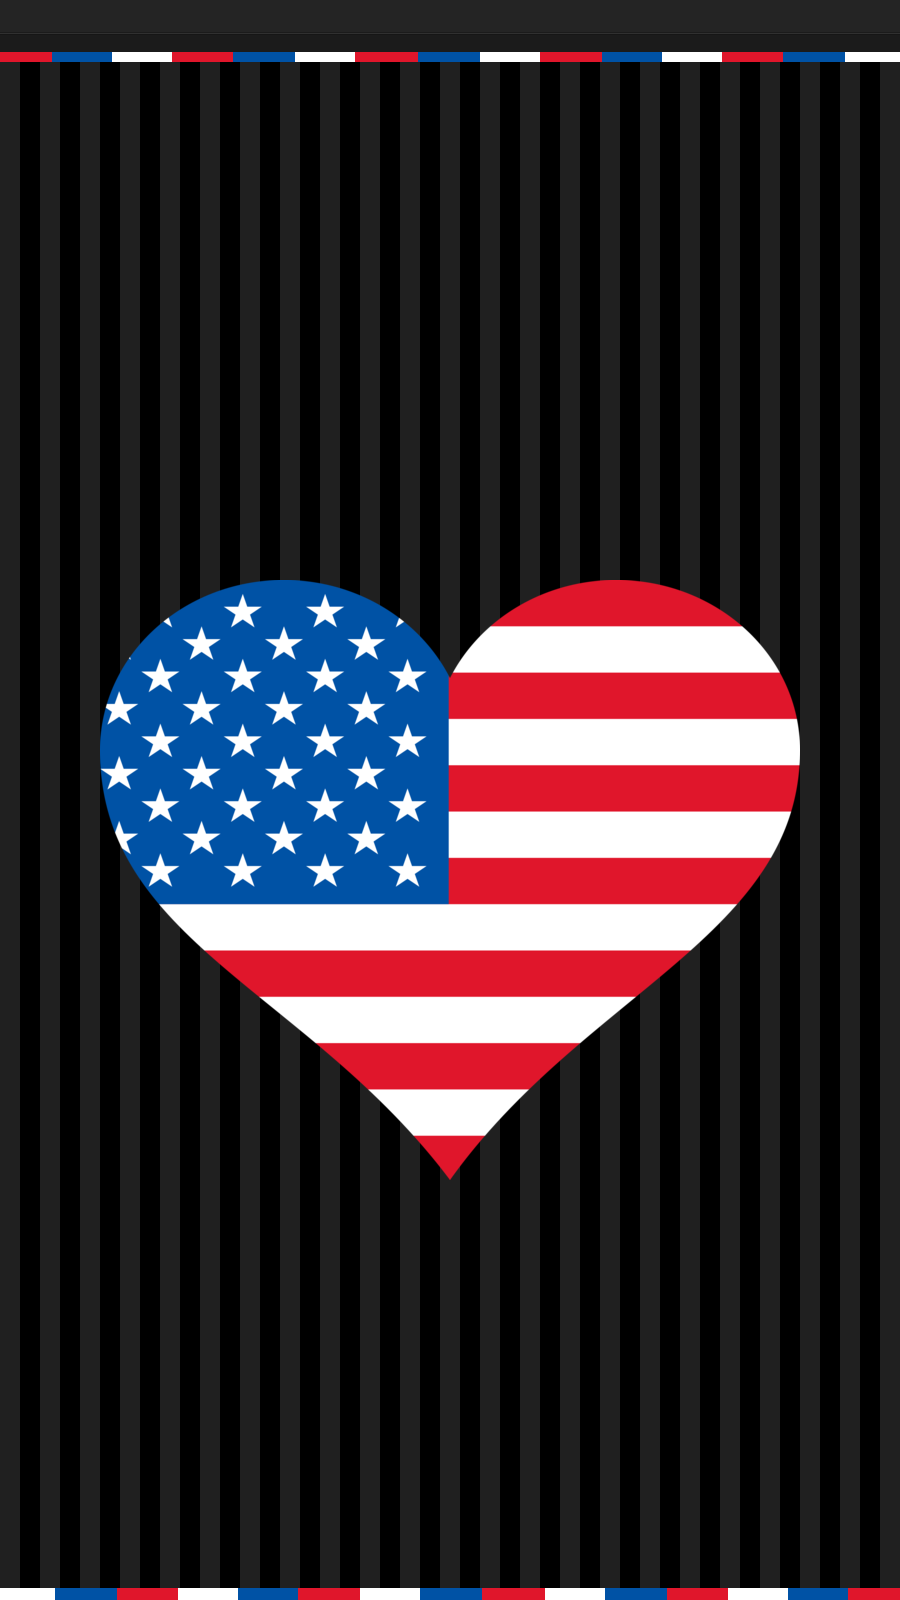 900x1600 Pin by Lollikins on 4th Of July Wallpaper in 2019 | 4th of ...